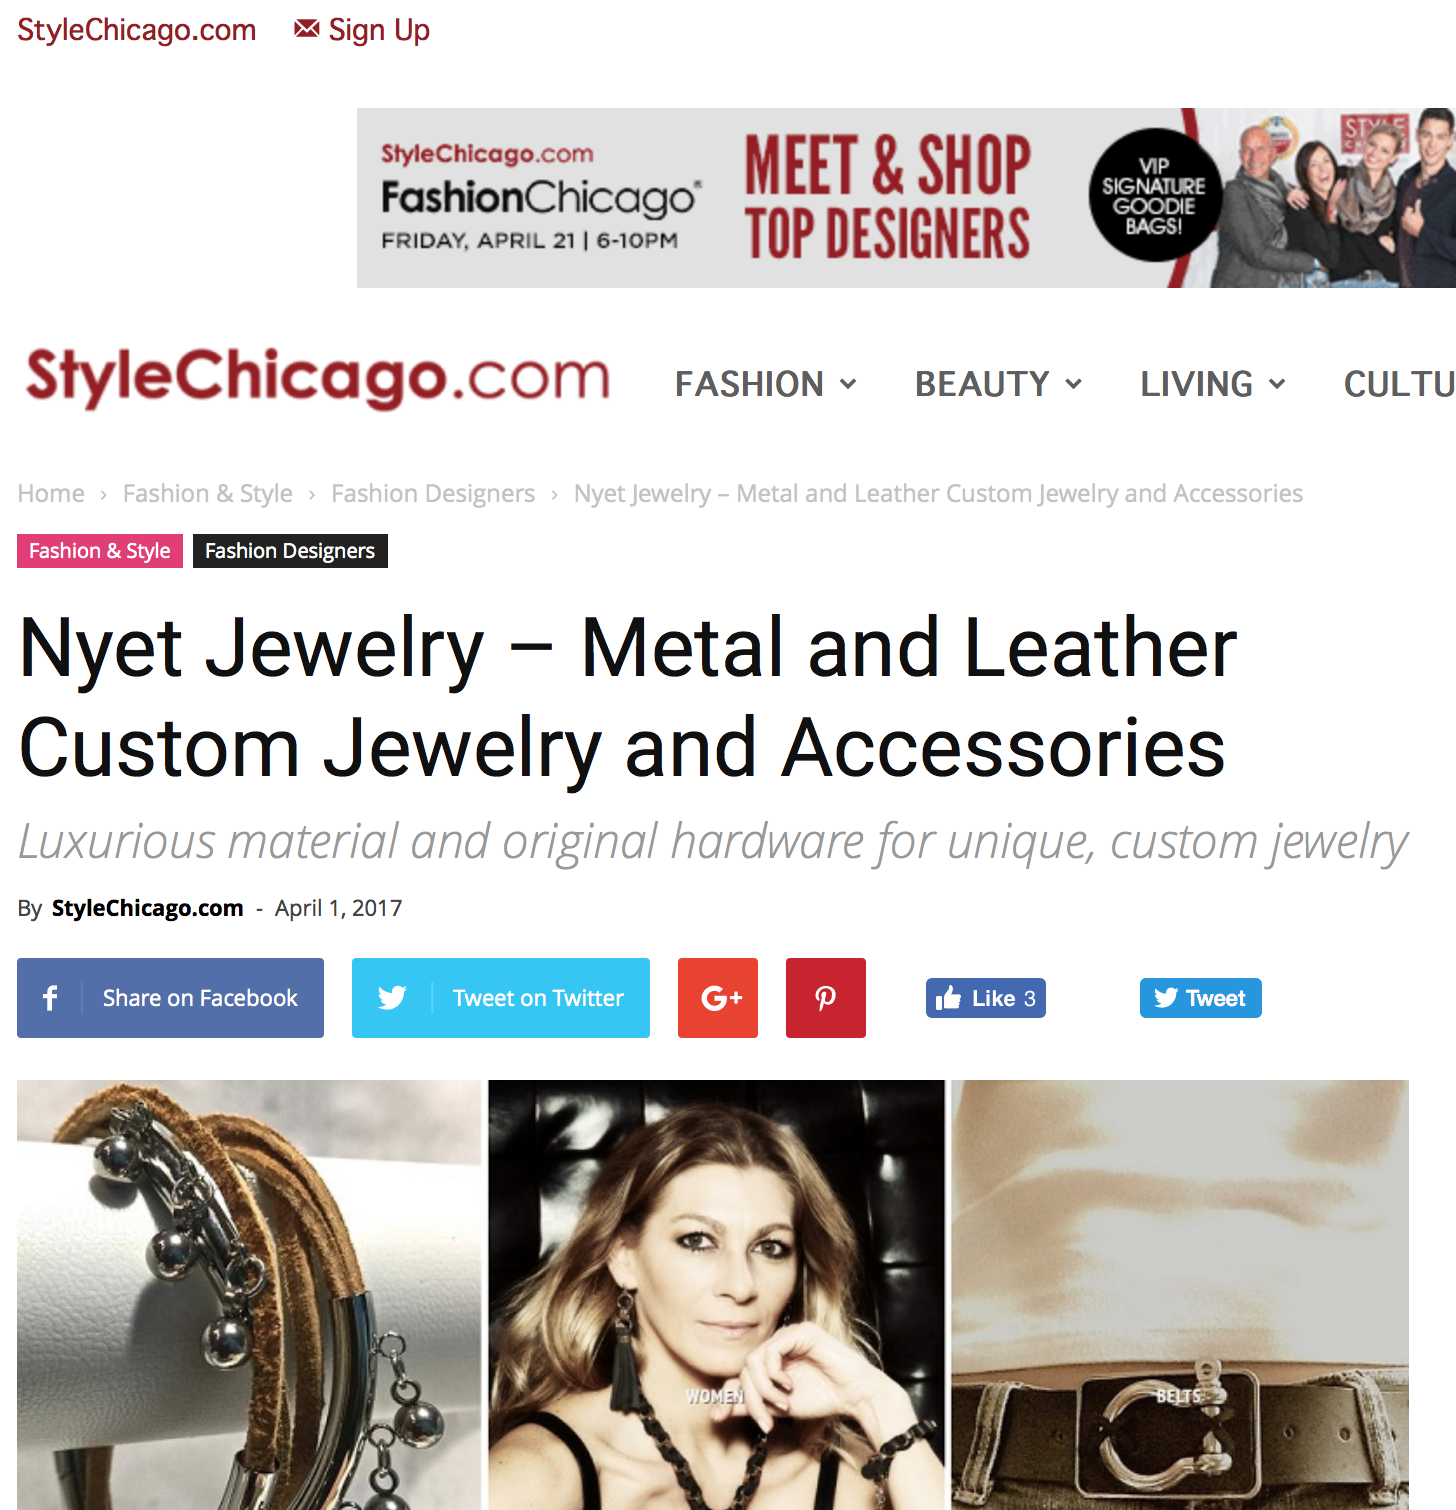 NYET JEWELRY FEATURED IN STYLECHICAGO.COM APRIL 2017